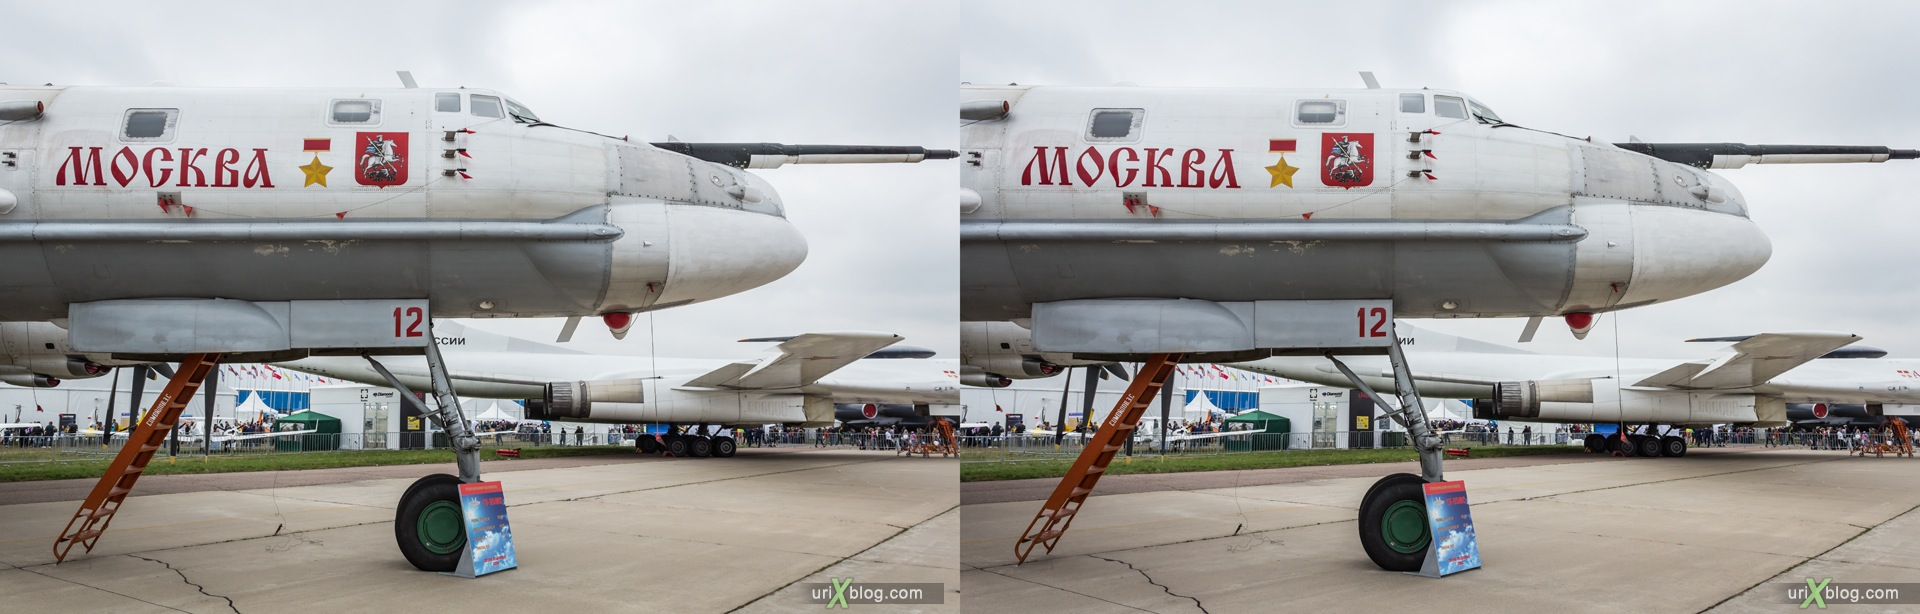 2013, Tu-95SM, MAKS, International Aviation and Space Salon, Russia, Soviet, USSR, Ramenskoye airfield, airplane, 3D, stereo pair, cross-eyed, crossview, cross view stereo pair, stereoscopic